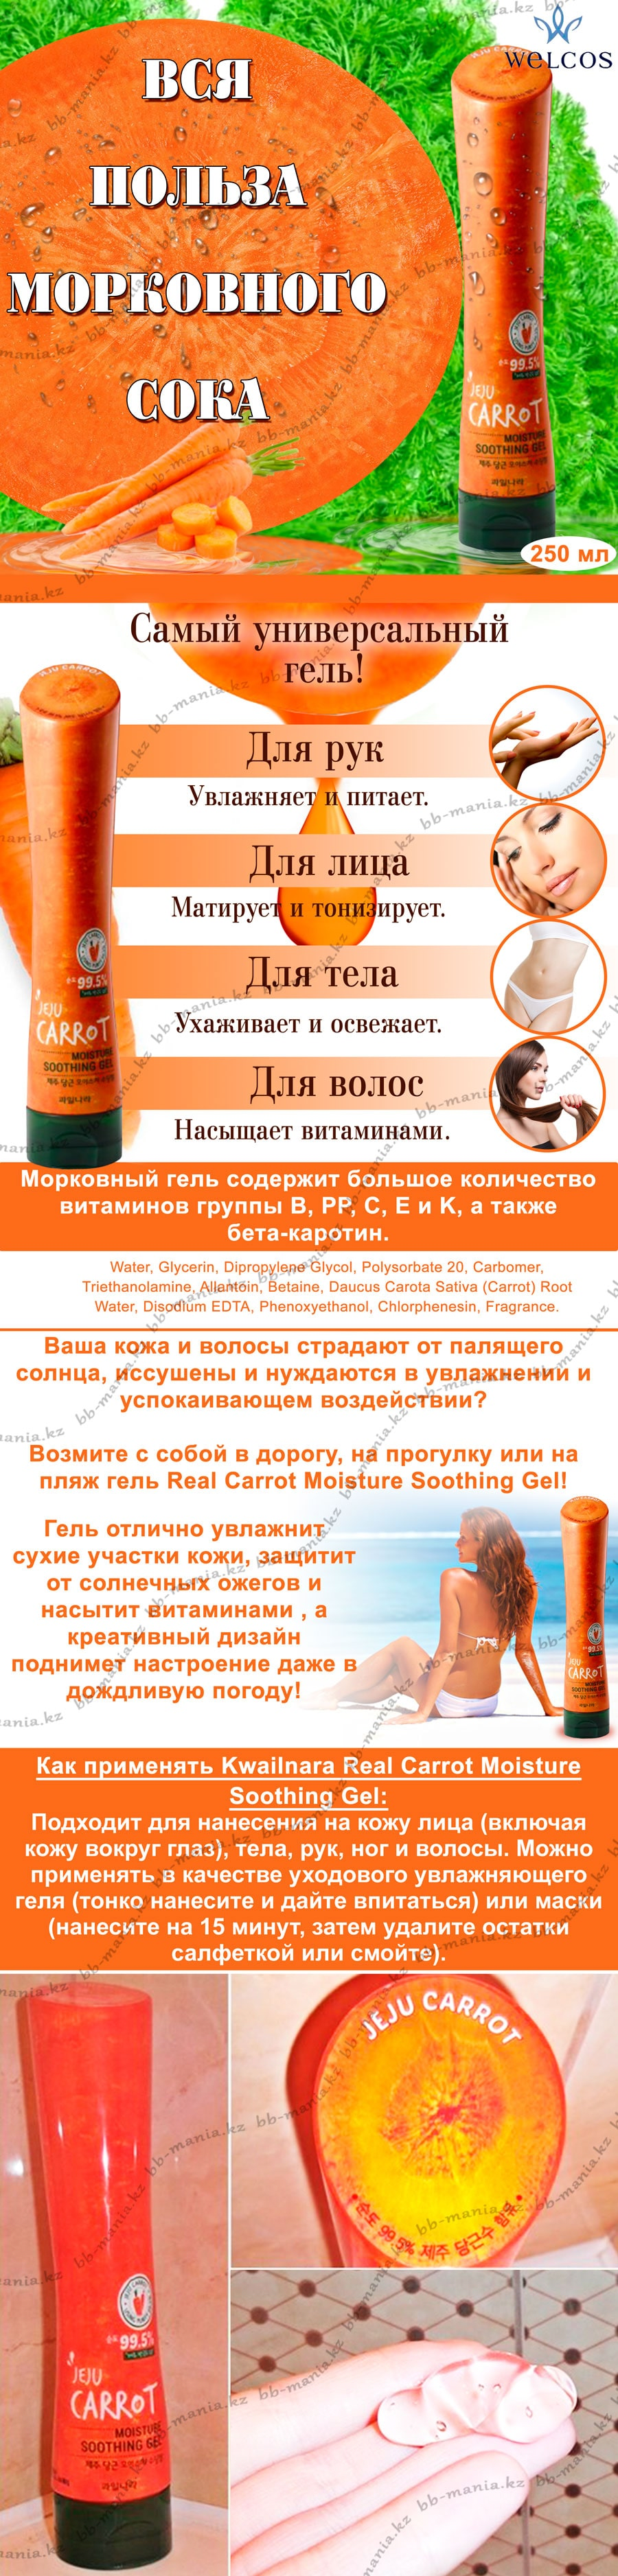 Real-Carrot-Moisture-Soothing-Gel-[Welcos]-min